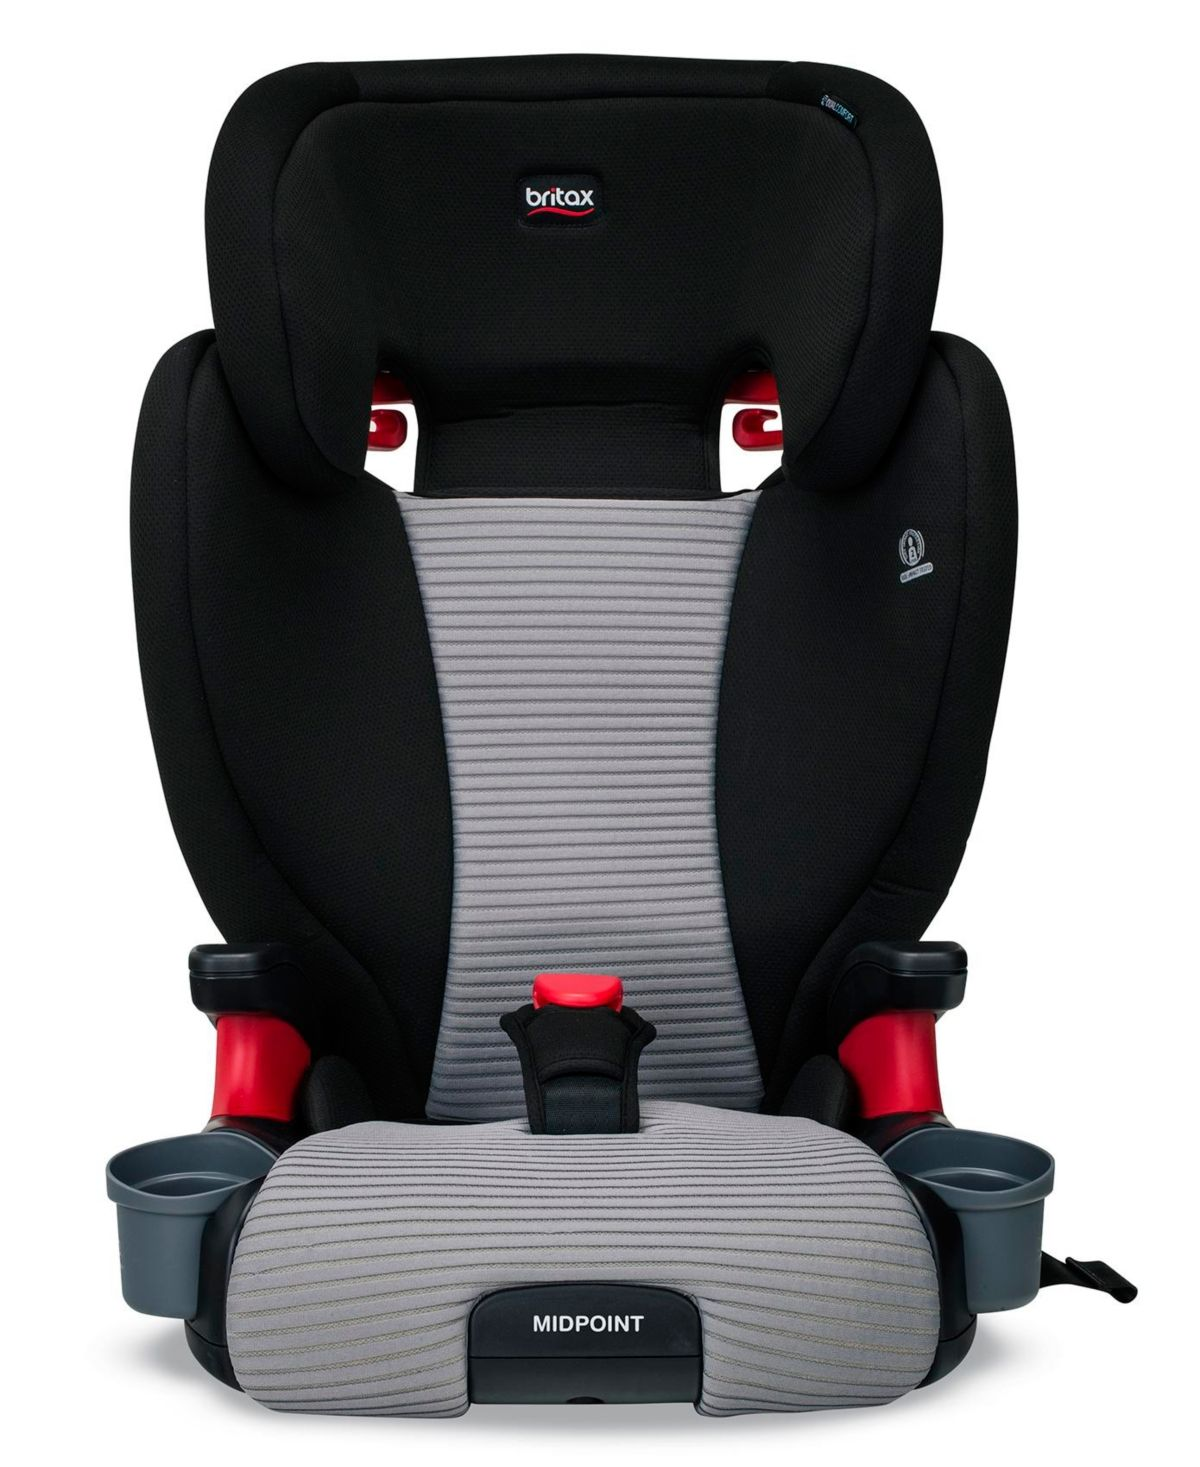 Britax Midpoint Belt Positioning Booster Dual Comfort Collection